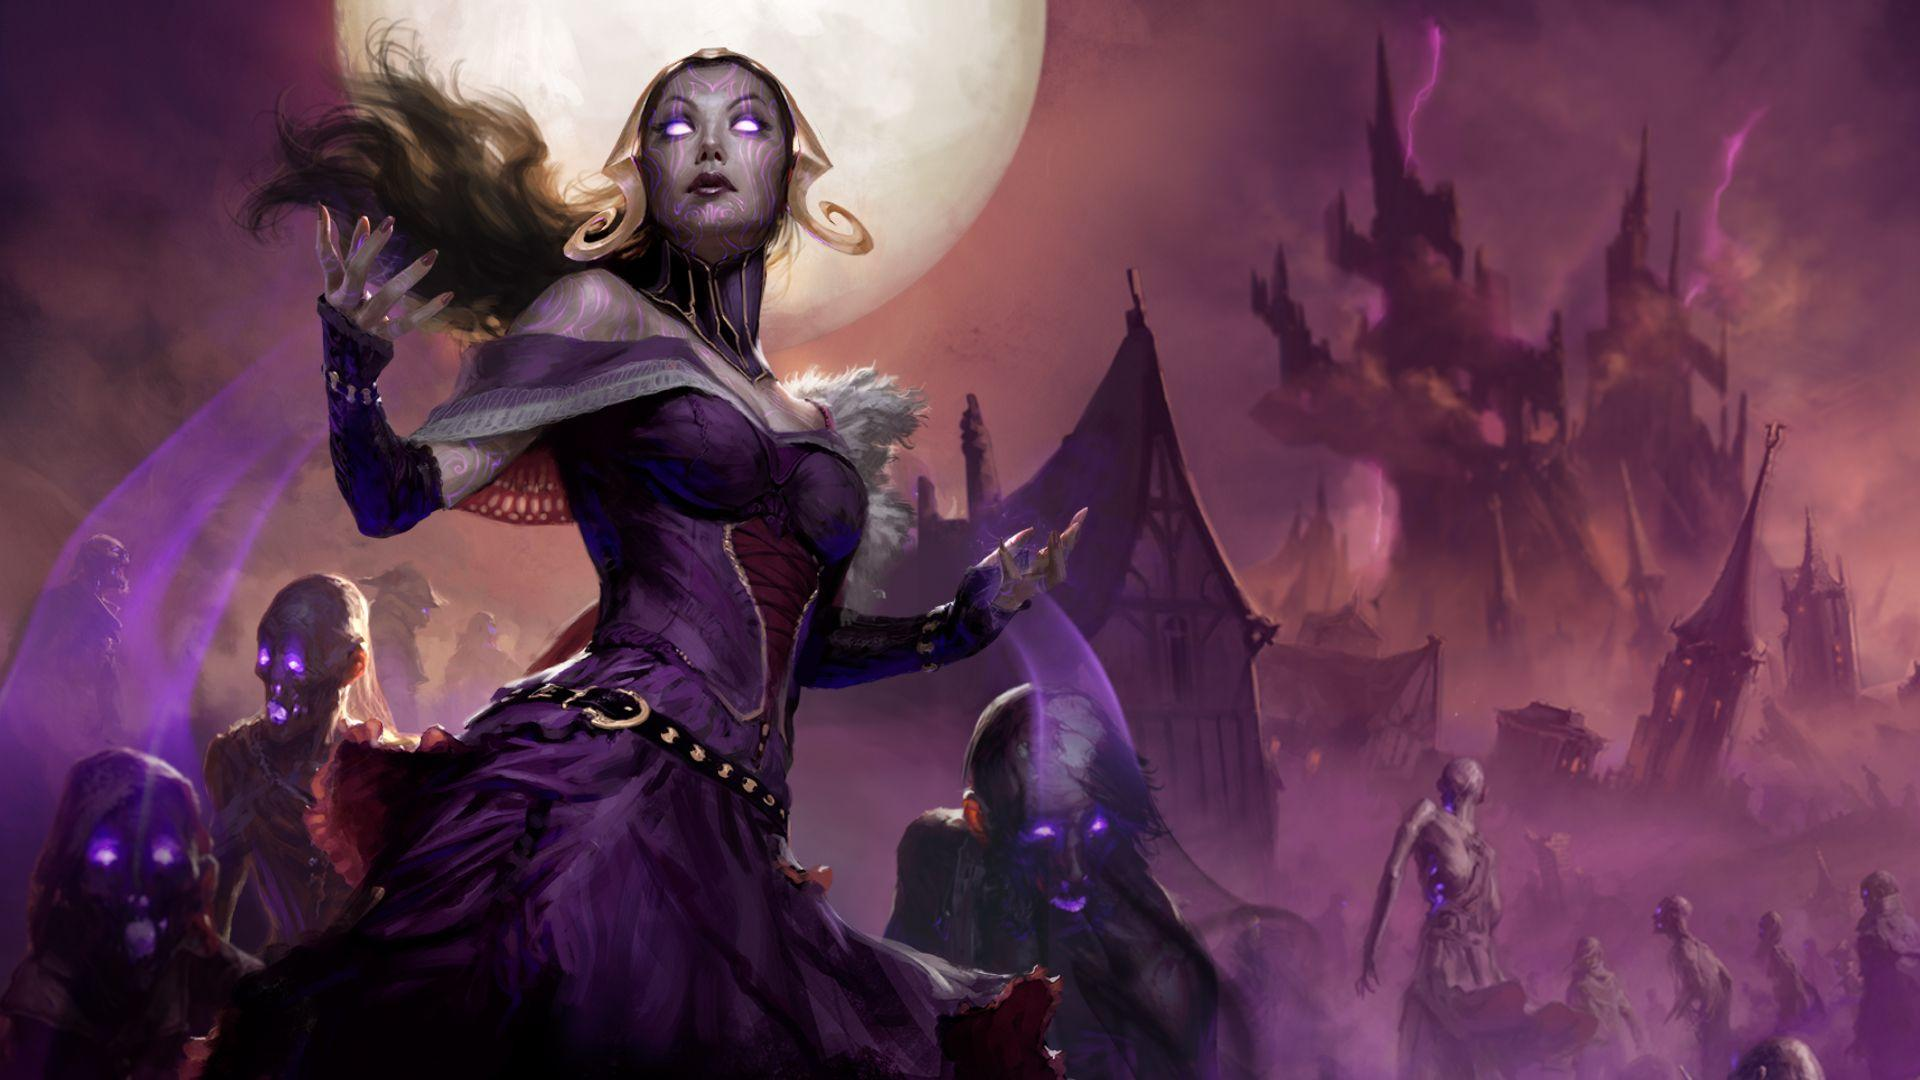 Liliana Wallpapers Wallpaper Cave